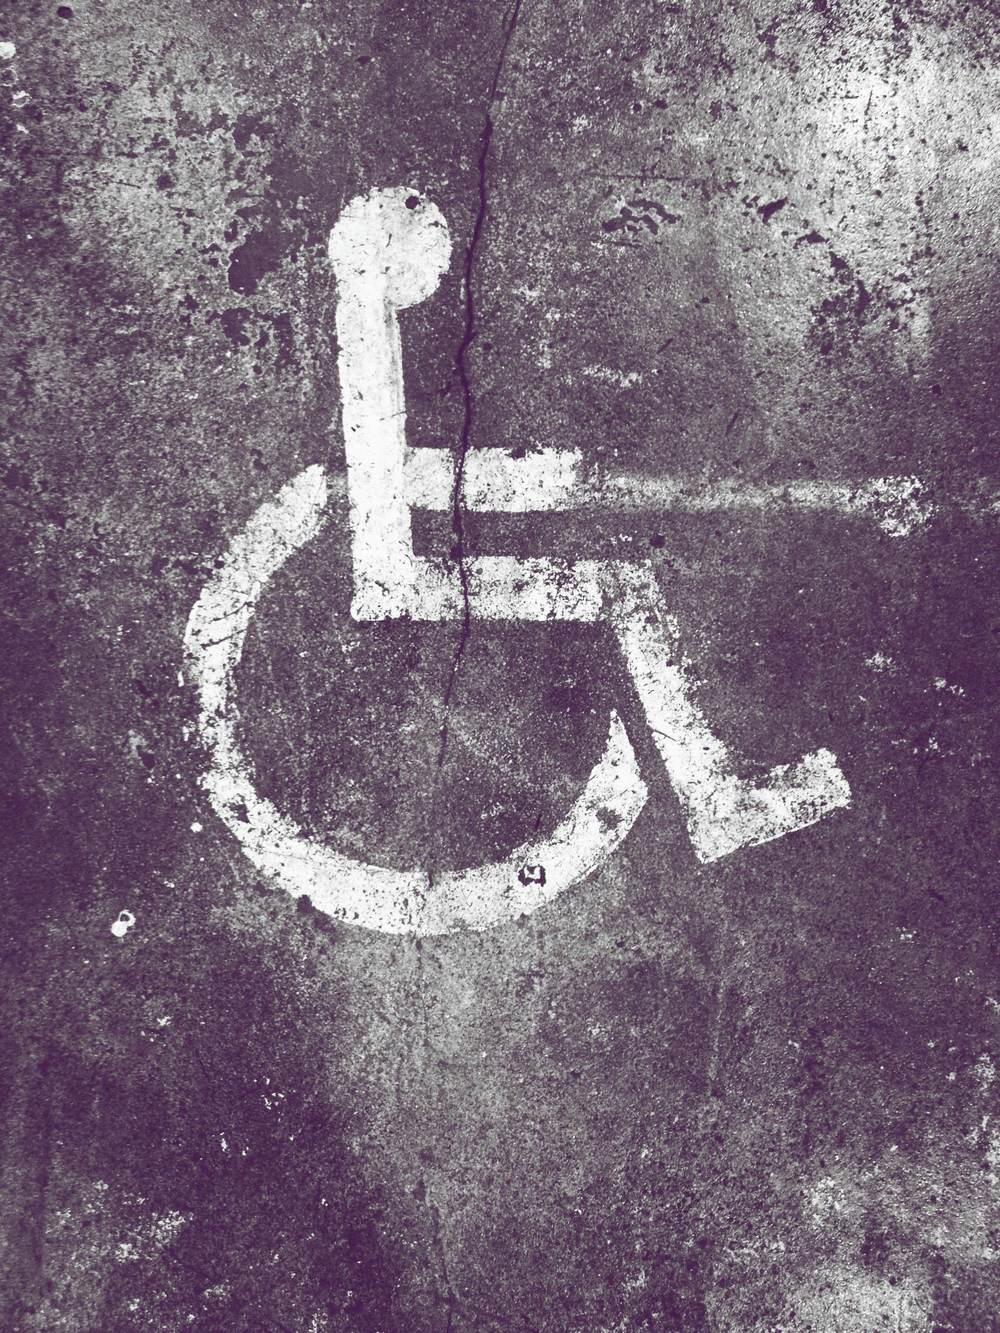 iphone photography handicap sign on concrete.jpg